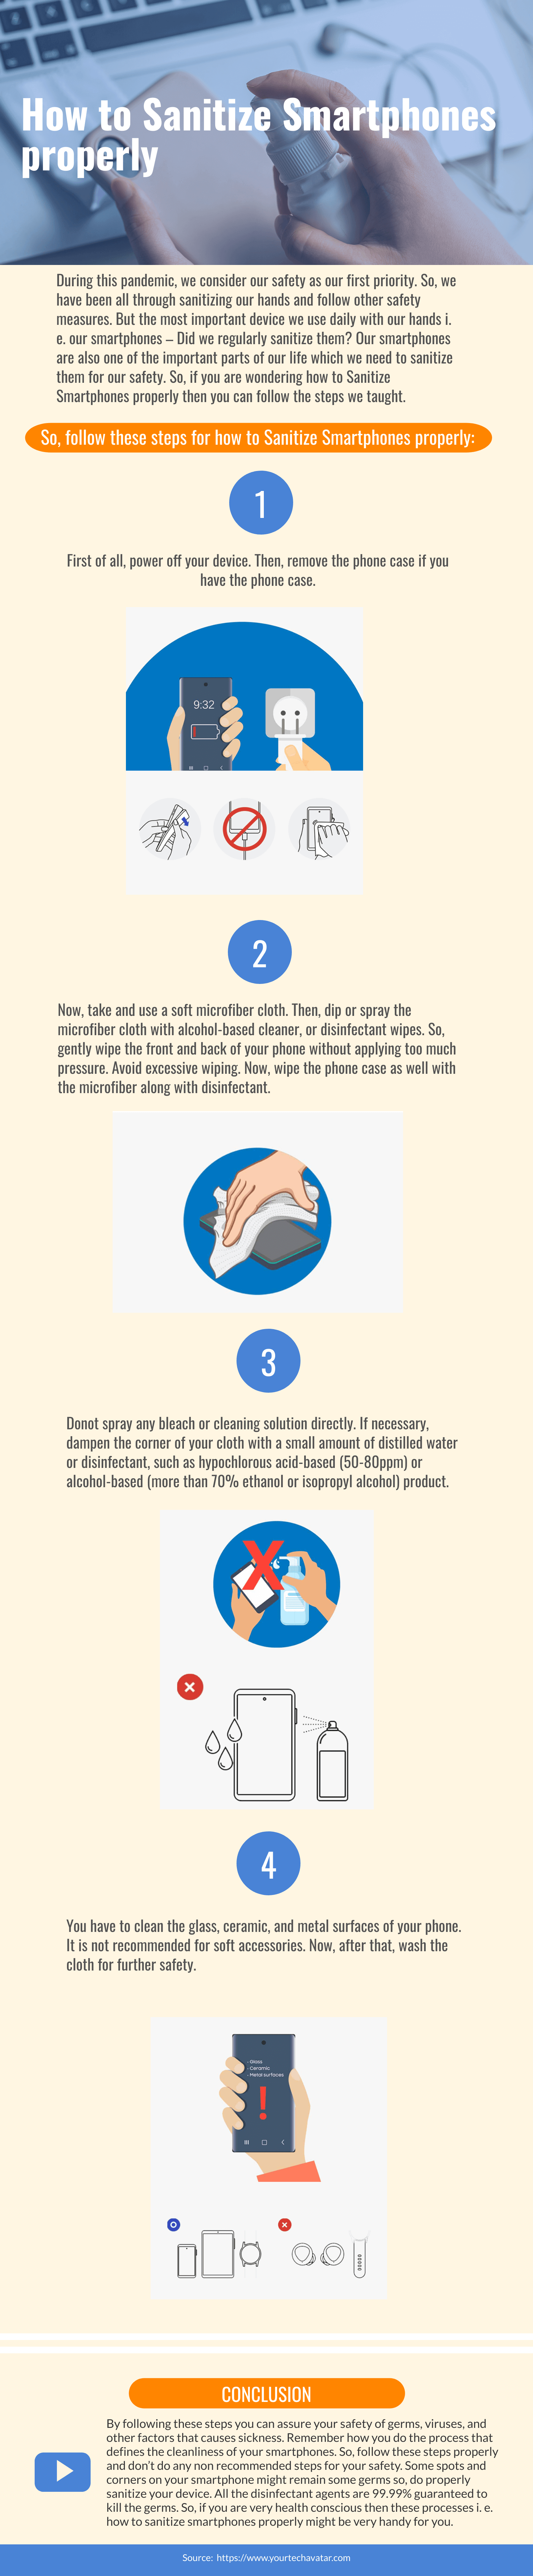 Infographic for How to Sanitize Your Smartphones properly